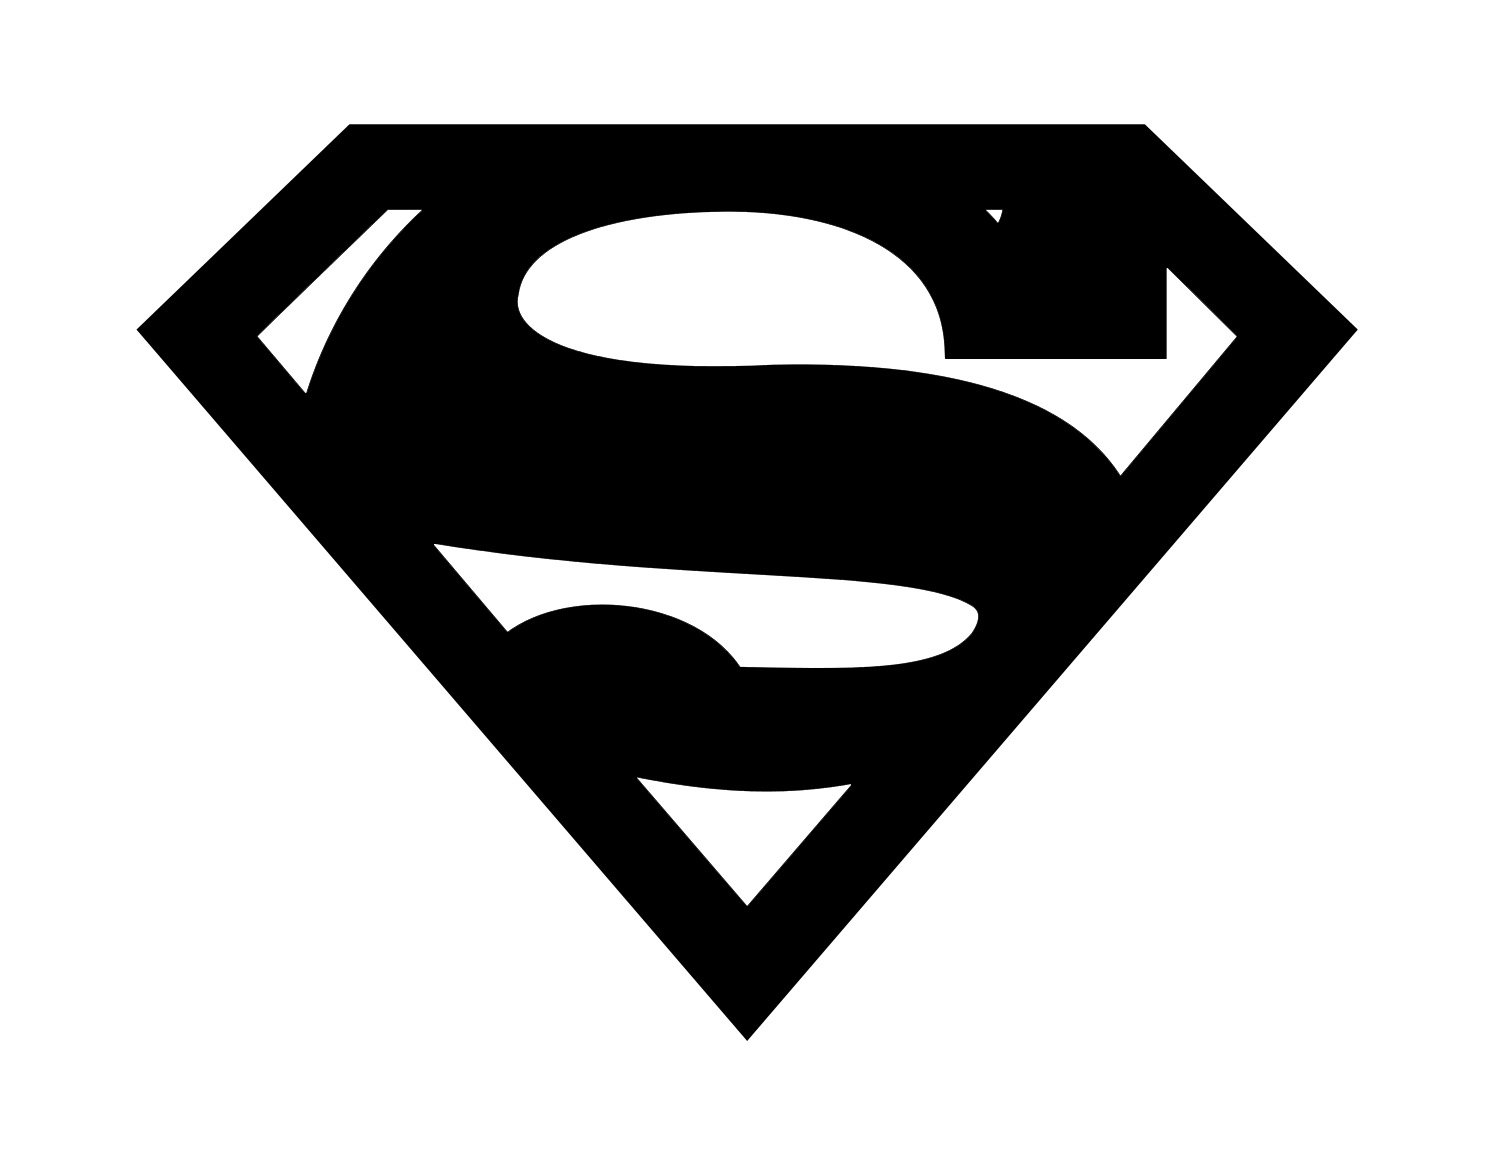 Since 1941 Supermans Chest Logo Has Been Modified More Than 15 Times Most Modifications However Were Hardly Visible And Included Nothing